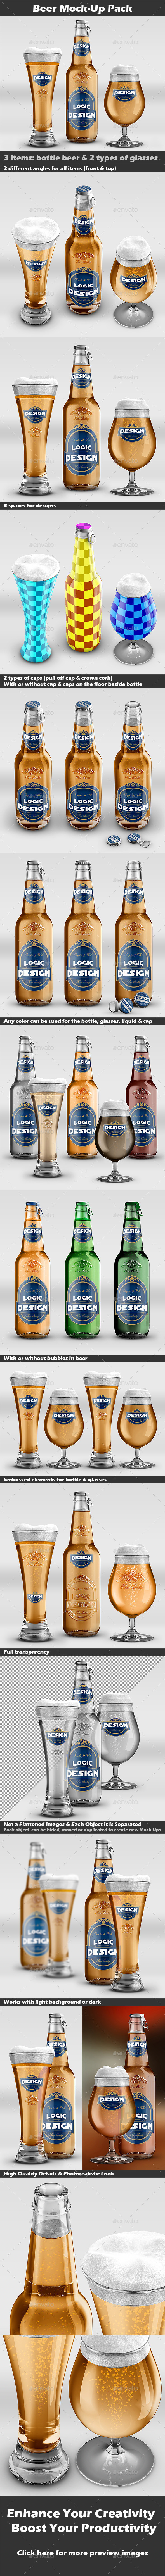 GraphicRiver Beer Mock-Up Pack 9340850